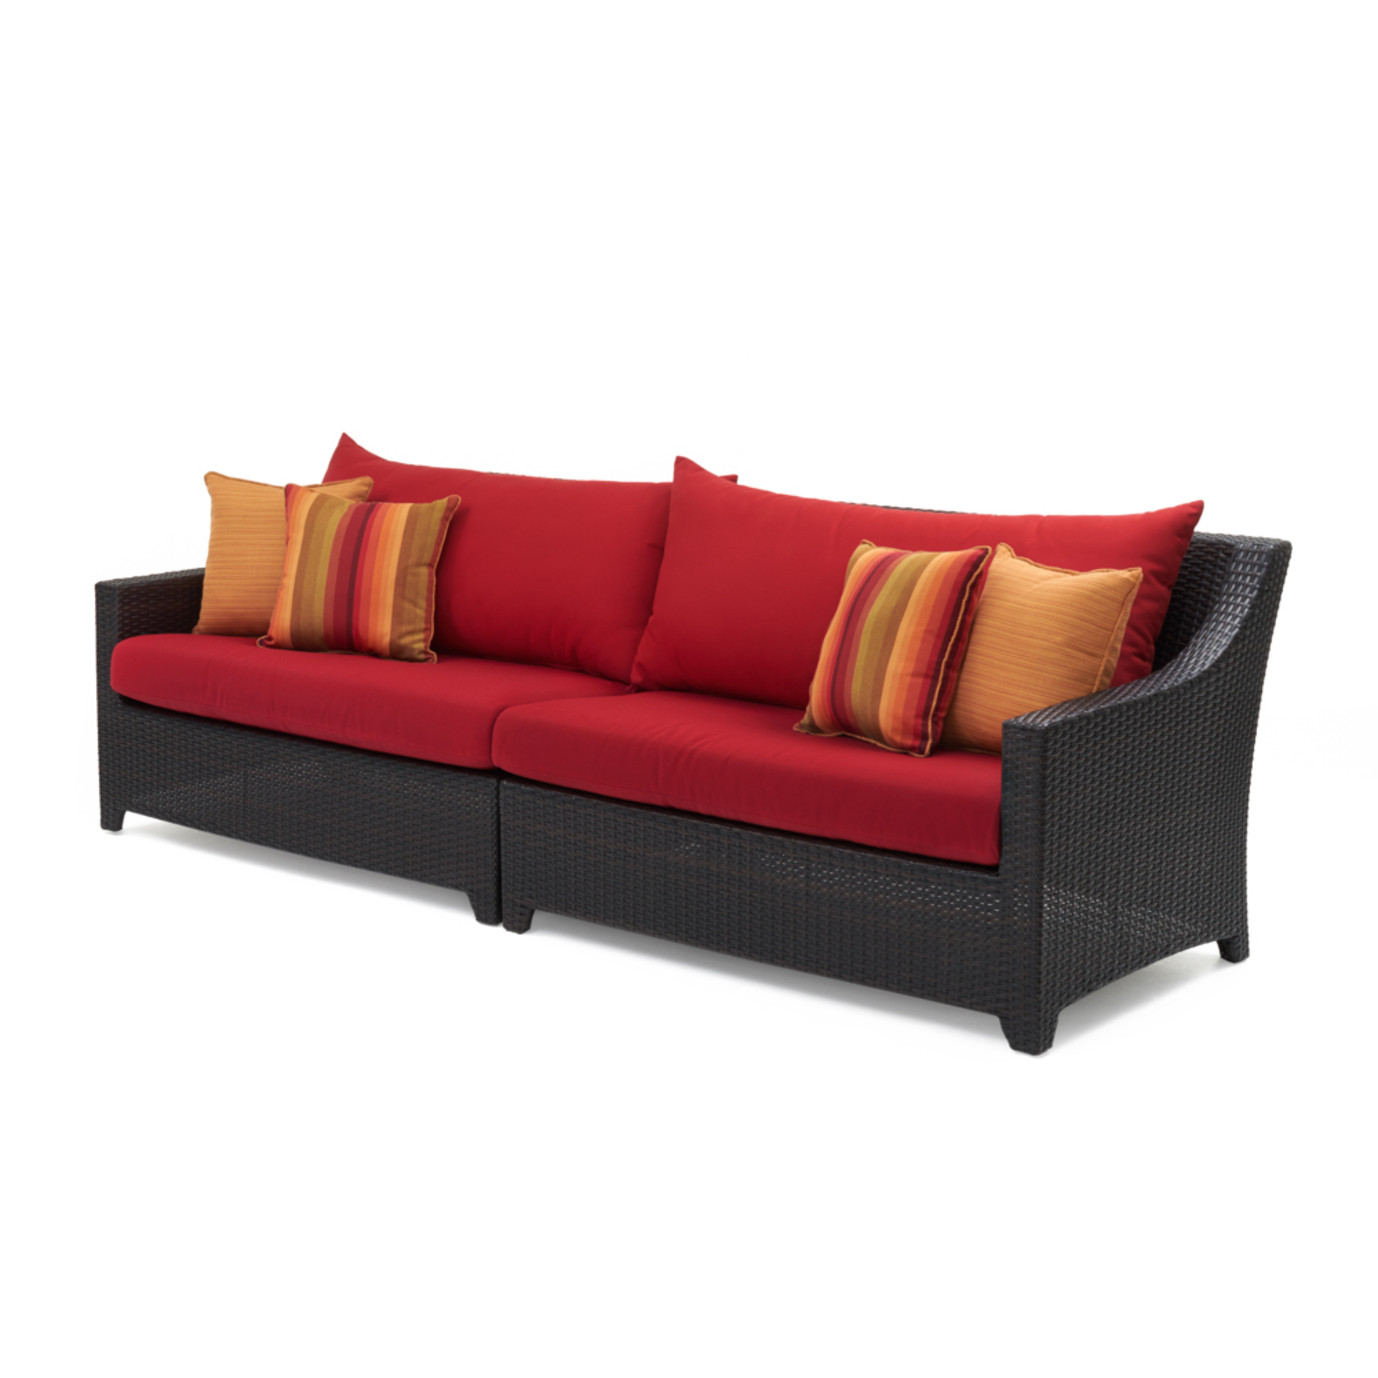 Deco™ Sofa - Sunset Red